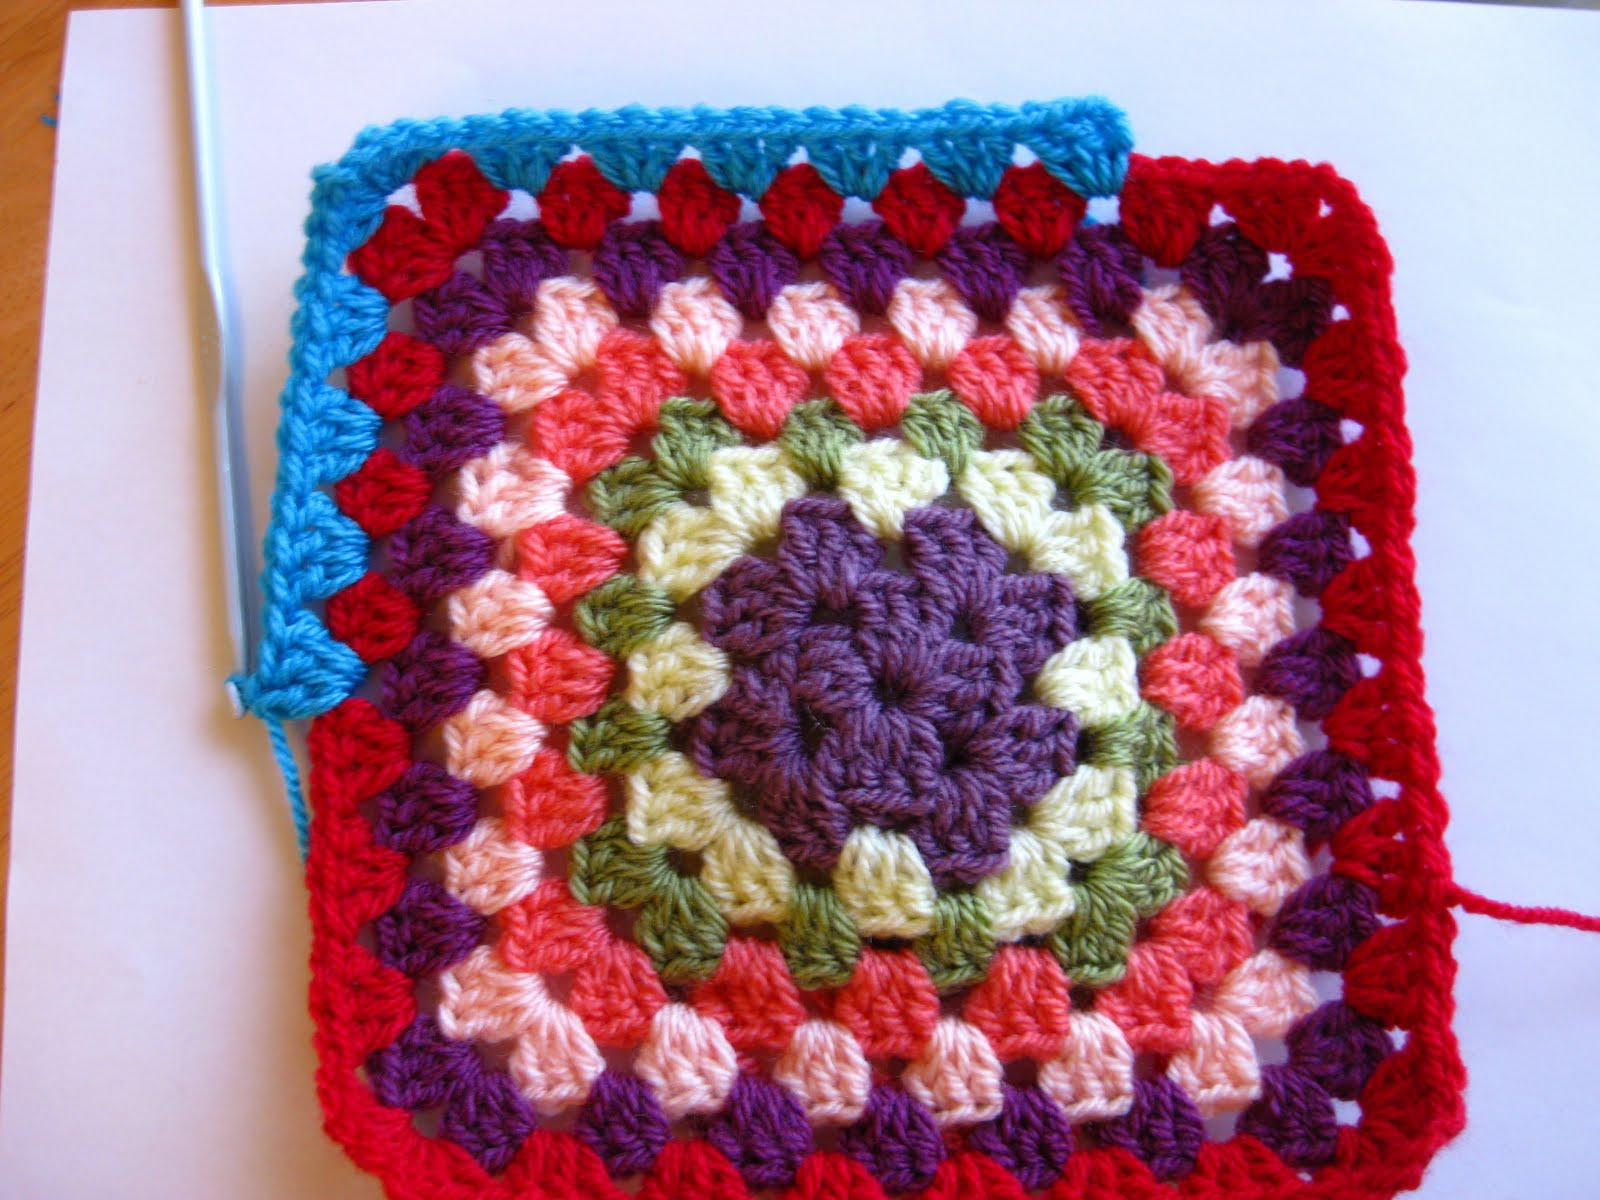 Free Crochet Granny Square Patterns For Beginners : Bunny Mummy: How to crochet a Granny Square